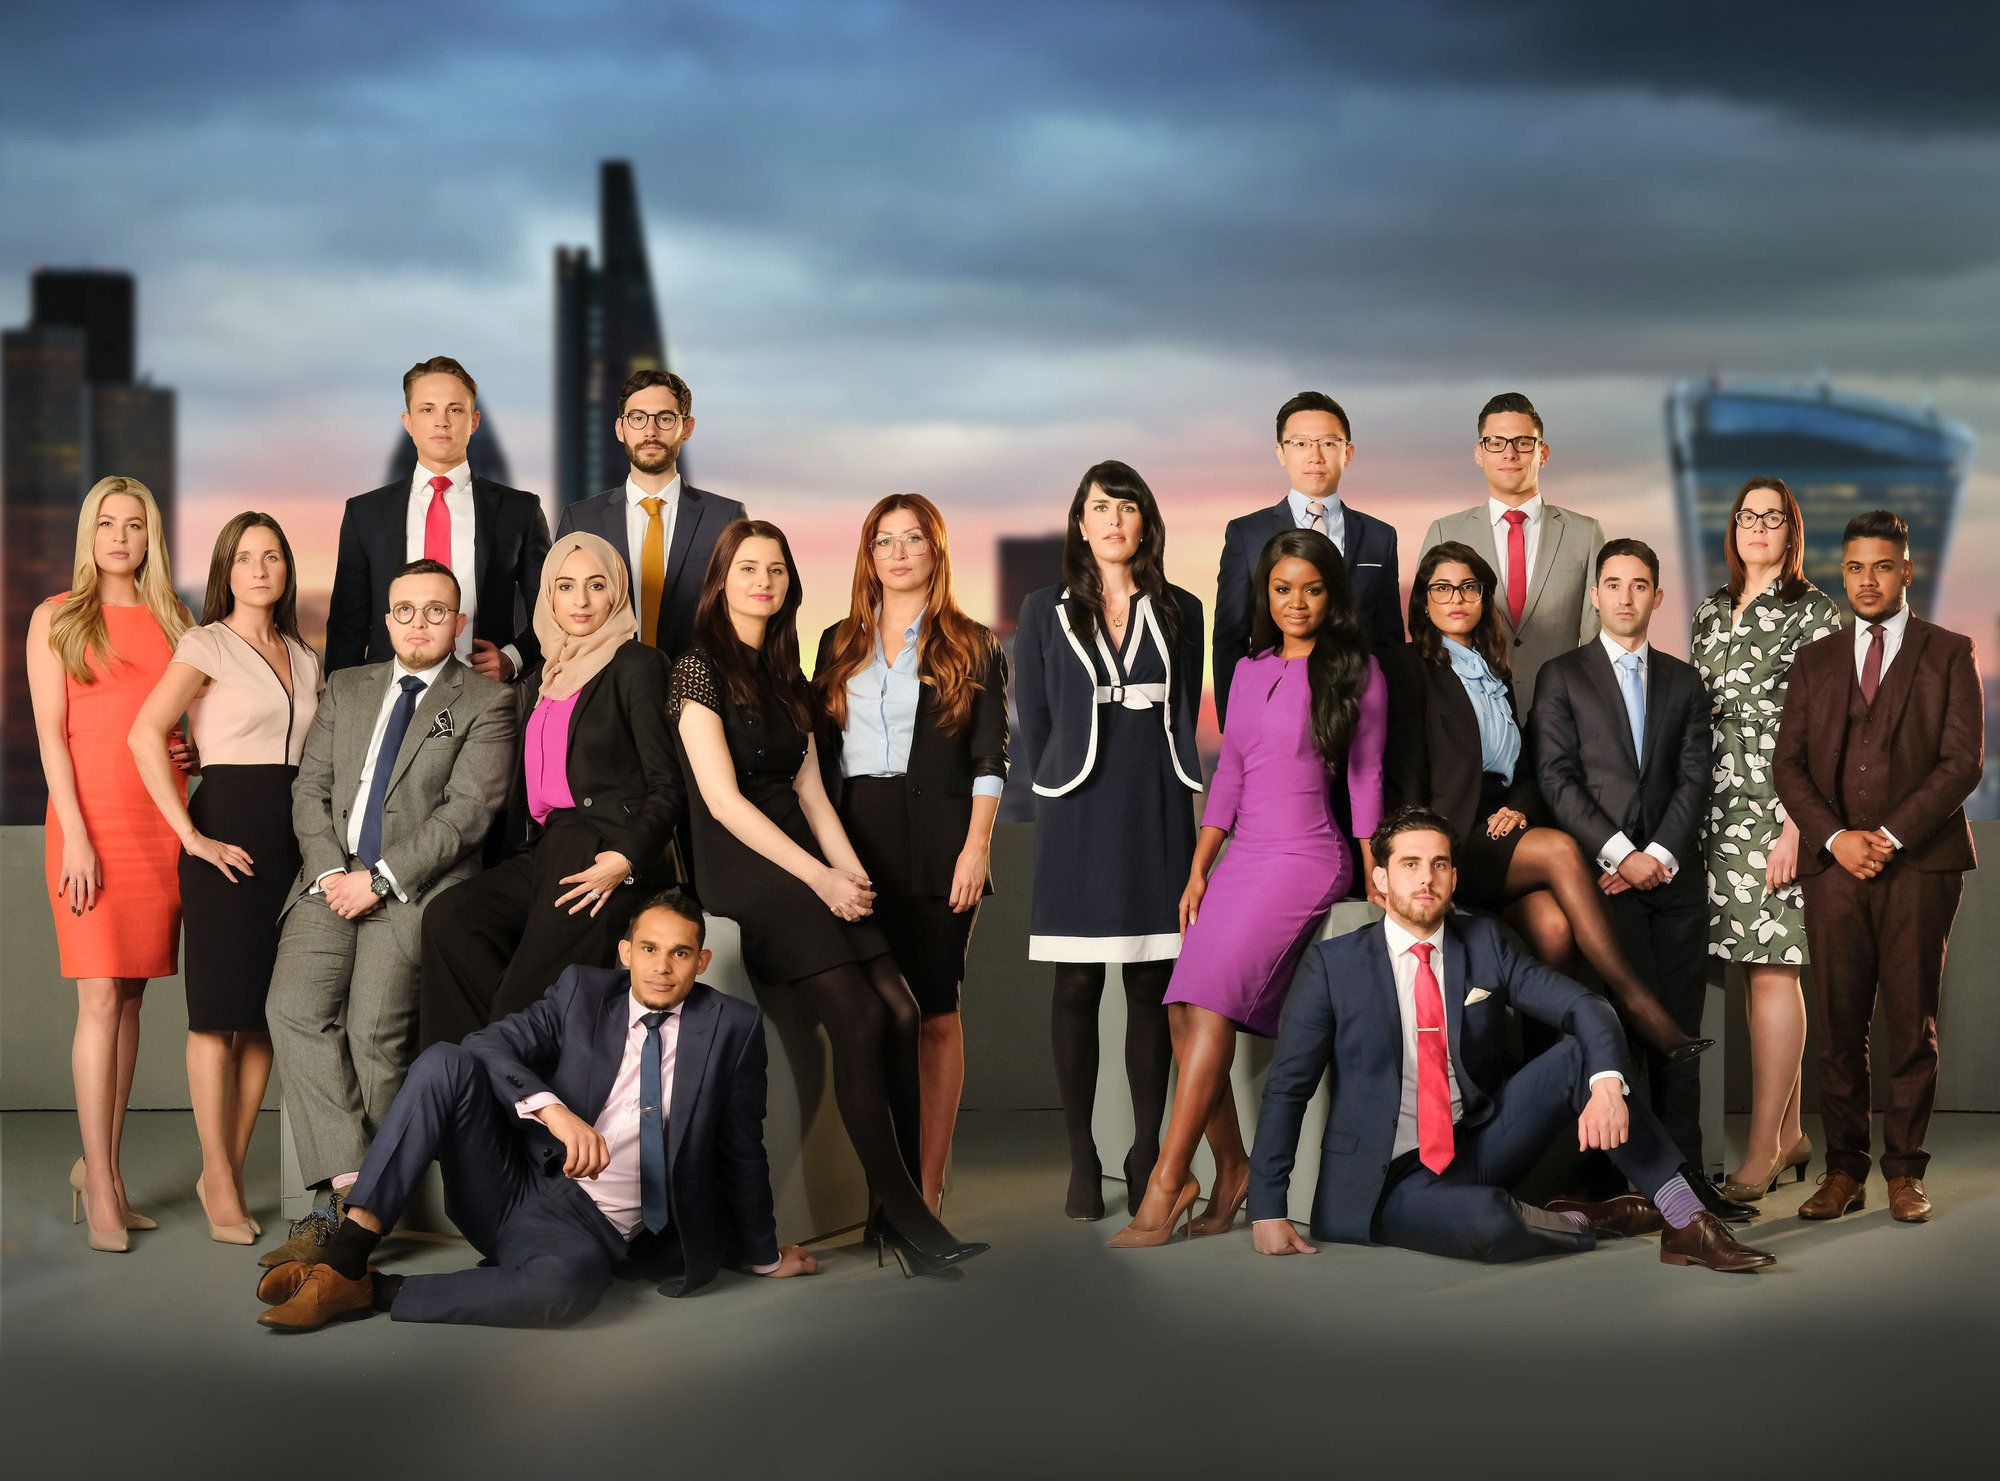 Meet The 'Apprentice' Candidates Hoping To Impress Lord Sugar This